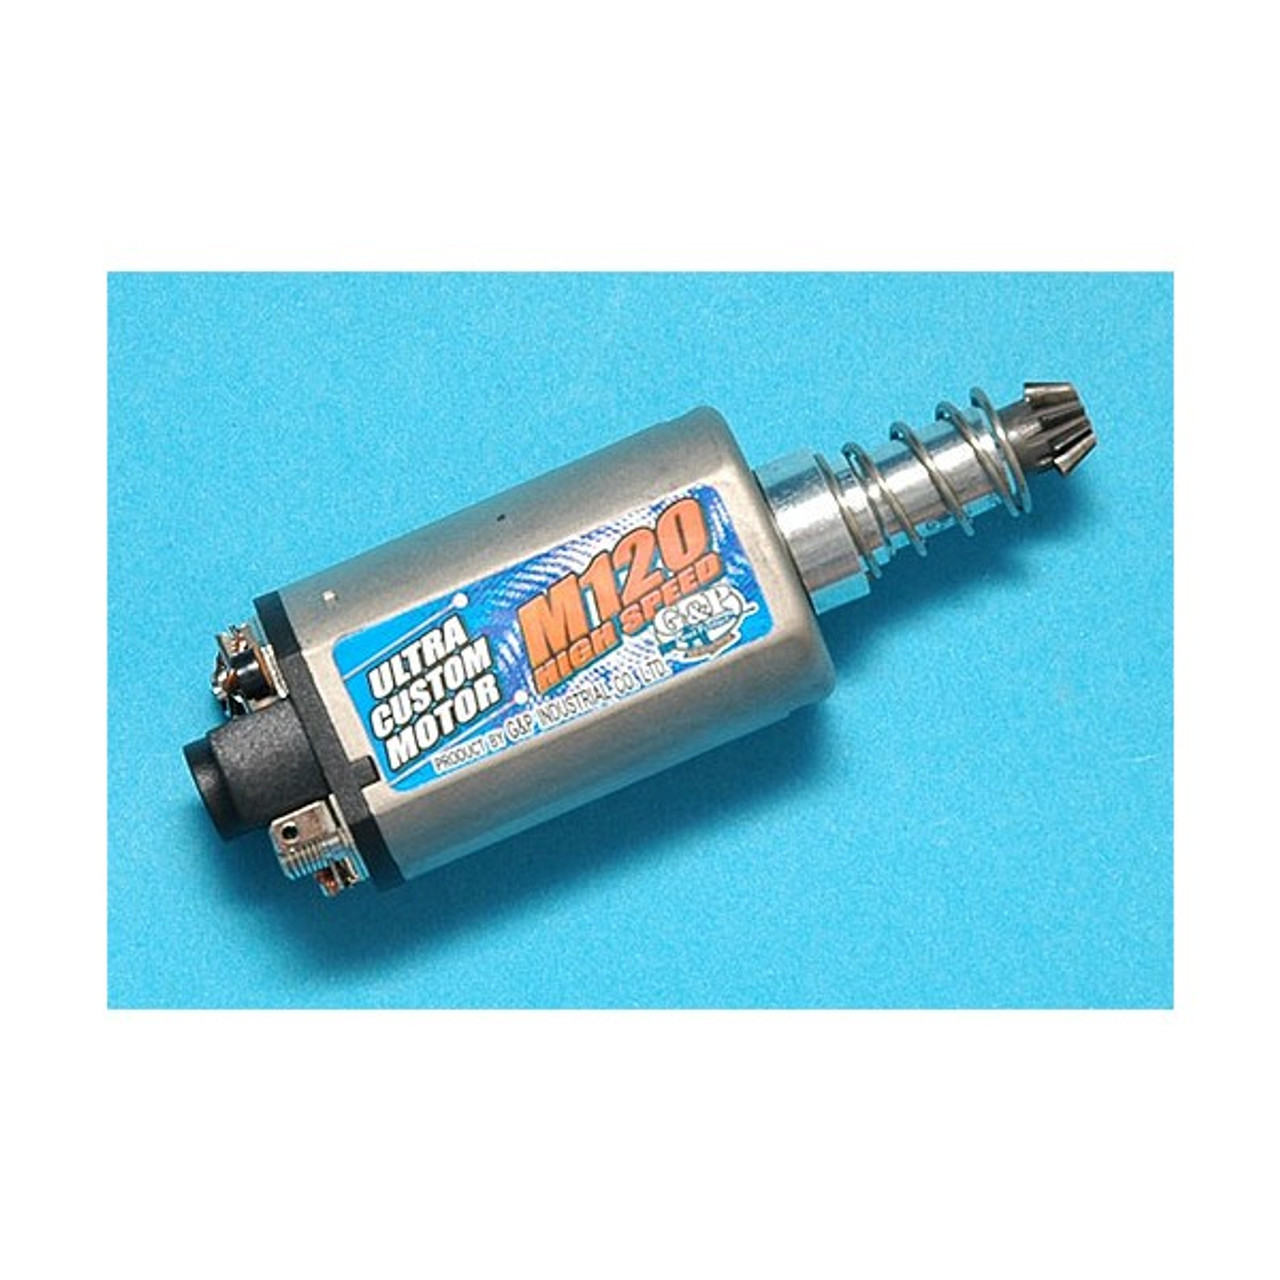 G p m120 hi speed motor long amped airsoft for High speed motors inc